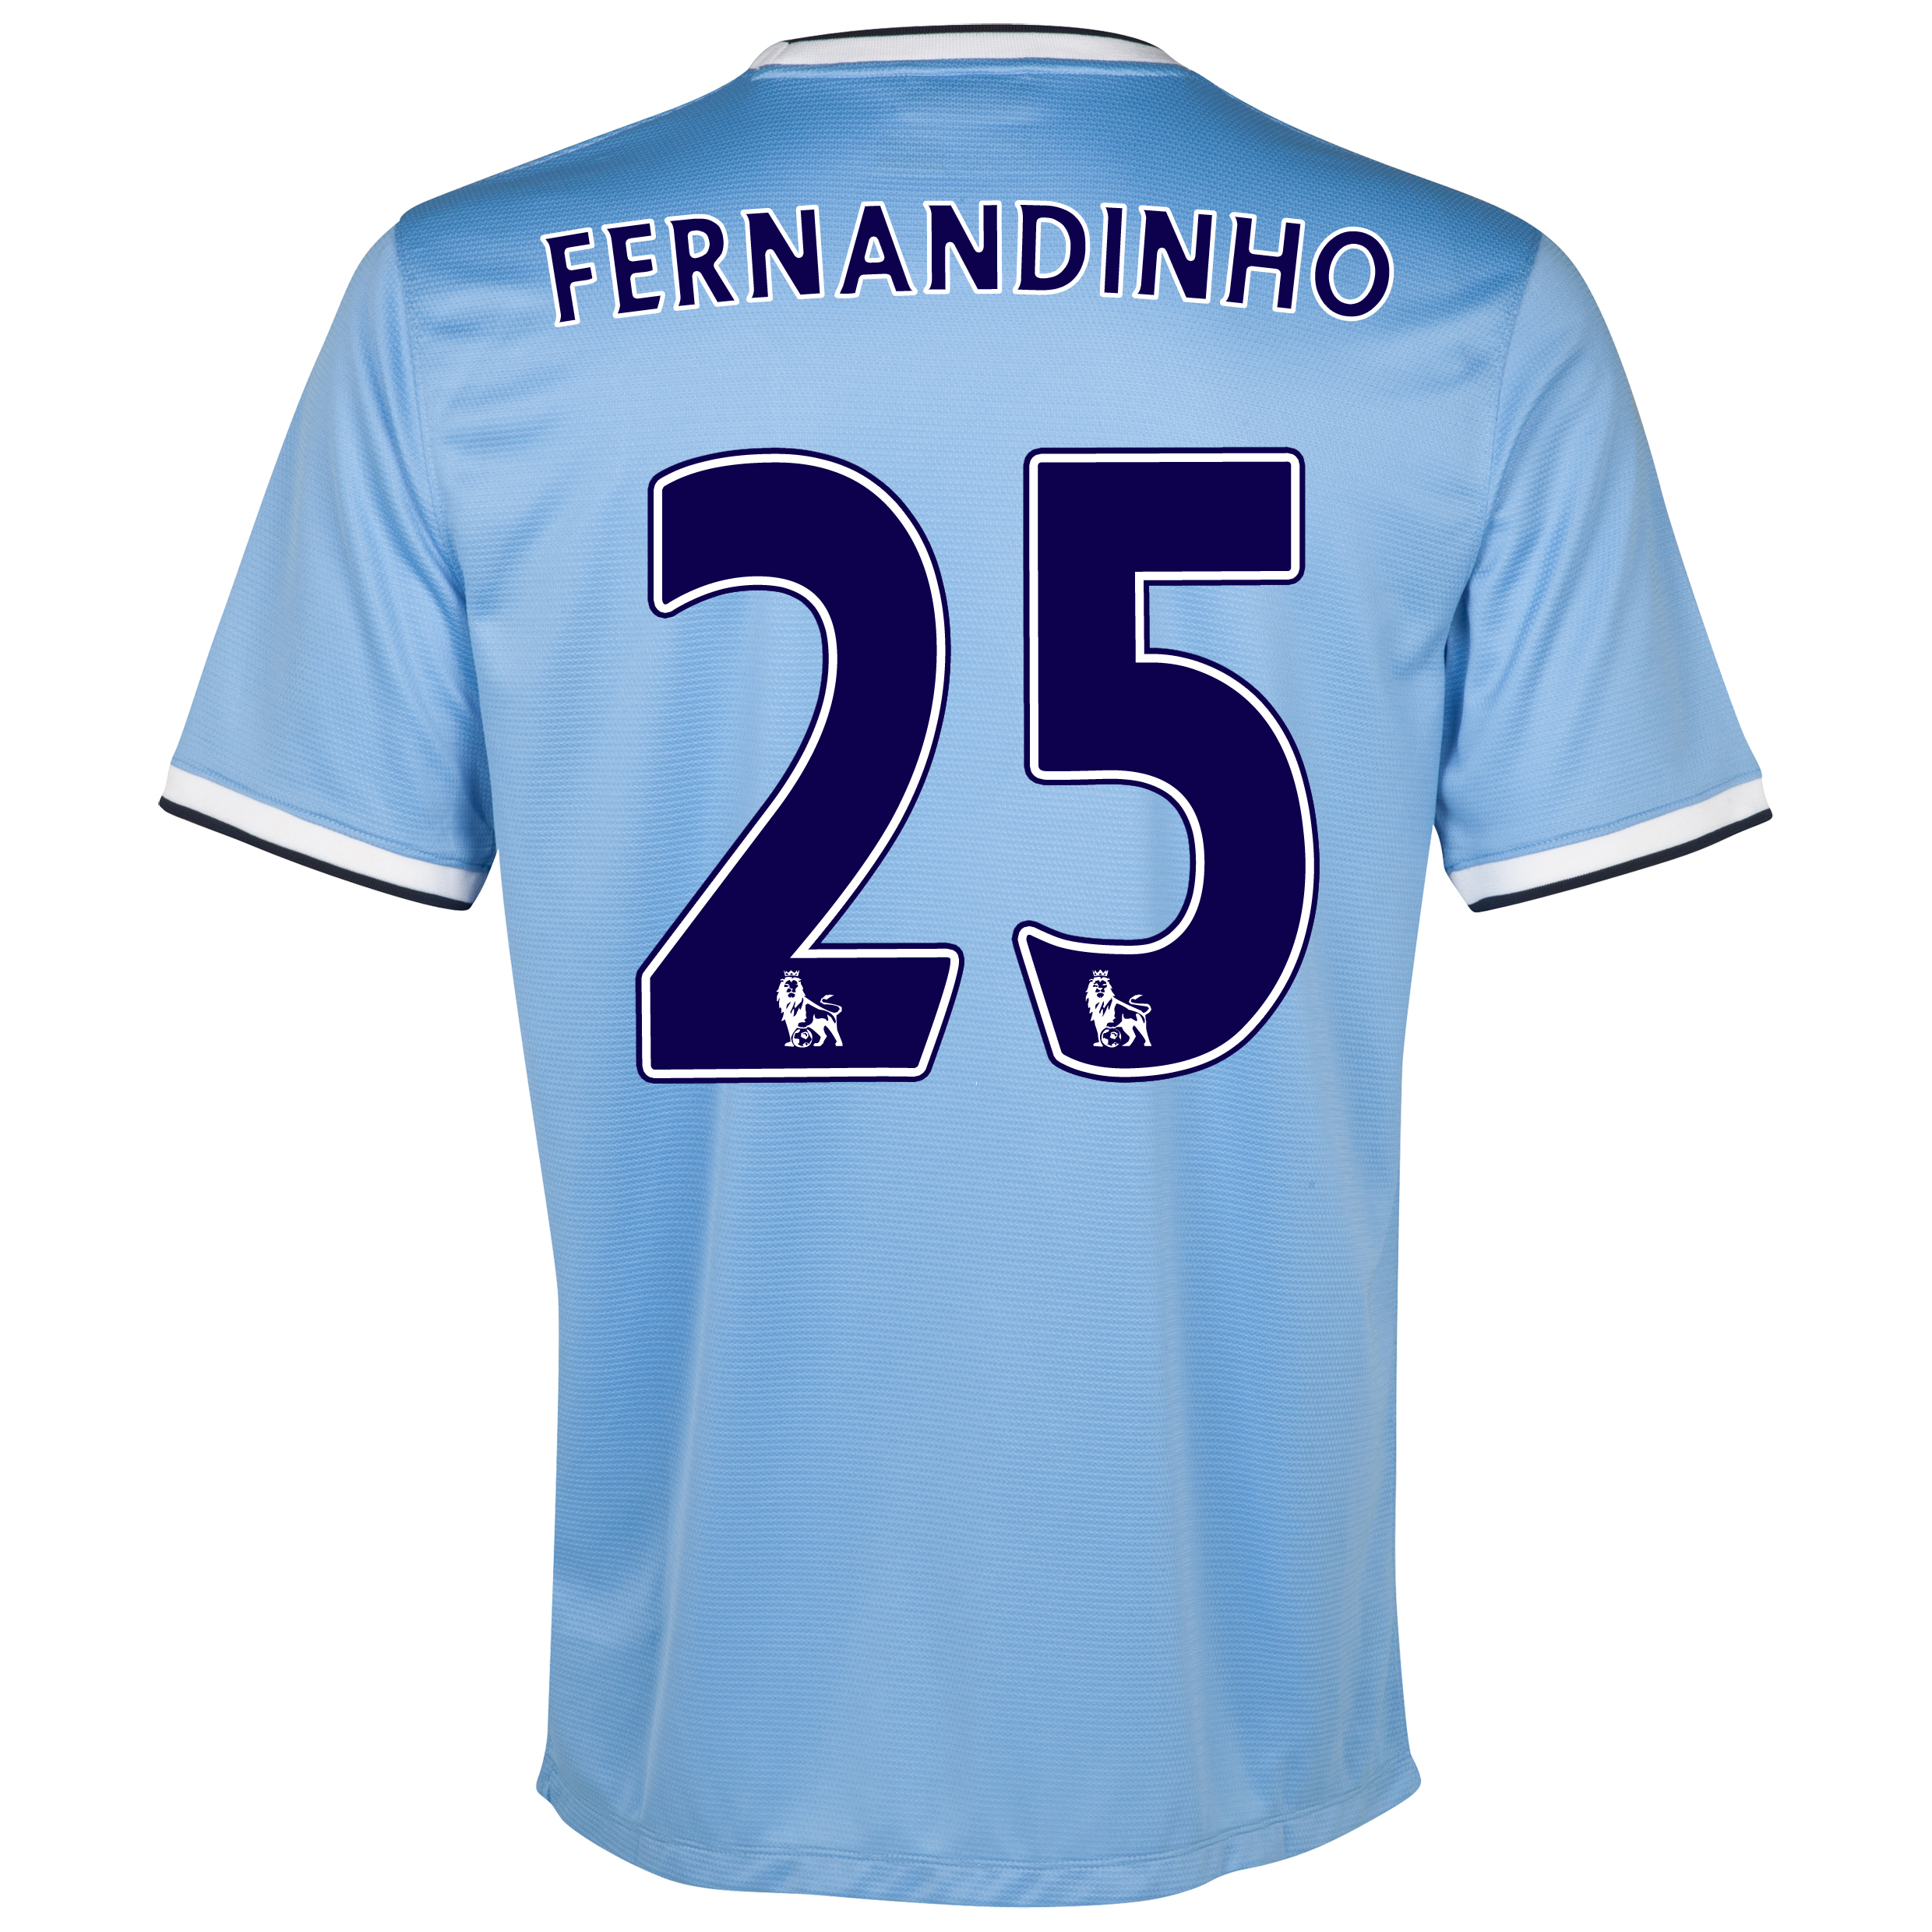 Manchester City Home Shirt 2013/14 - Womens with Fernandinho 25 printing